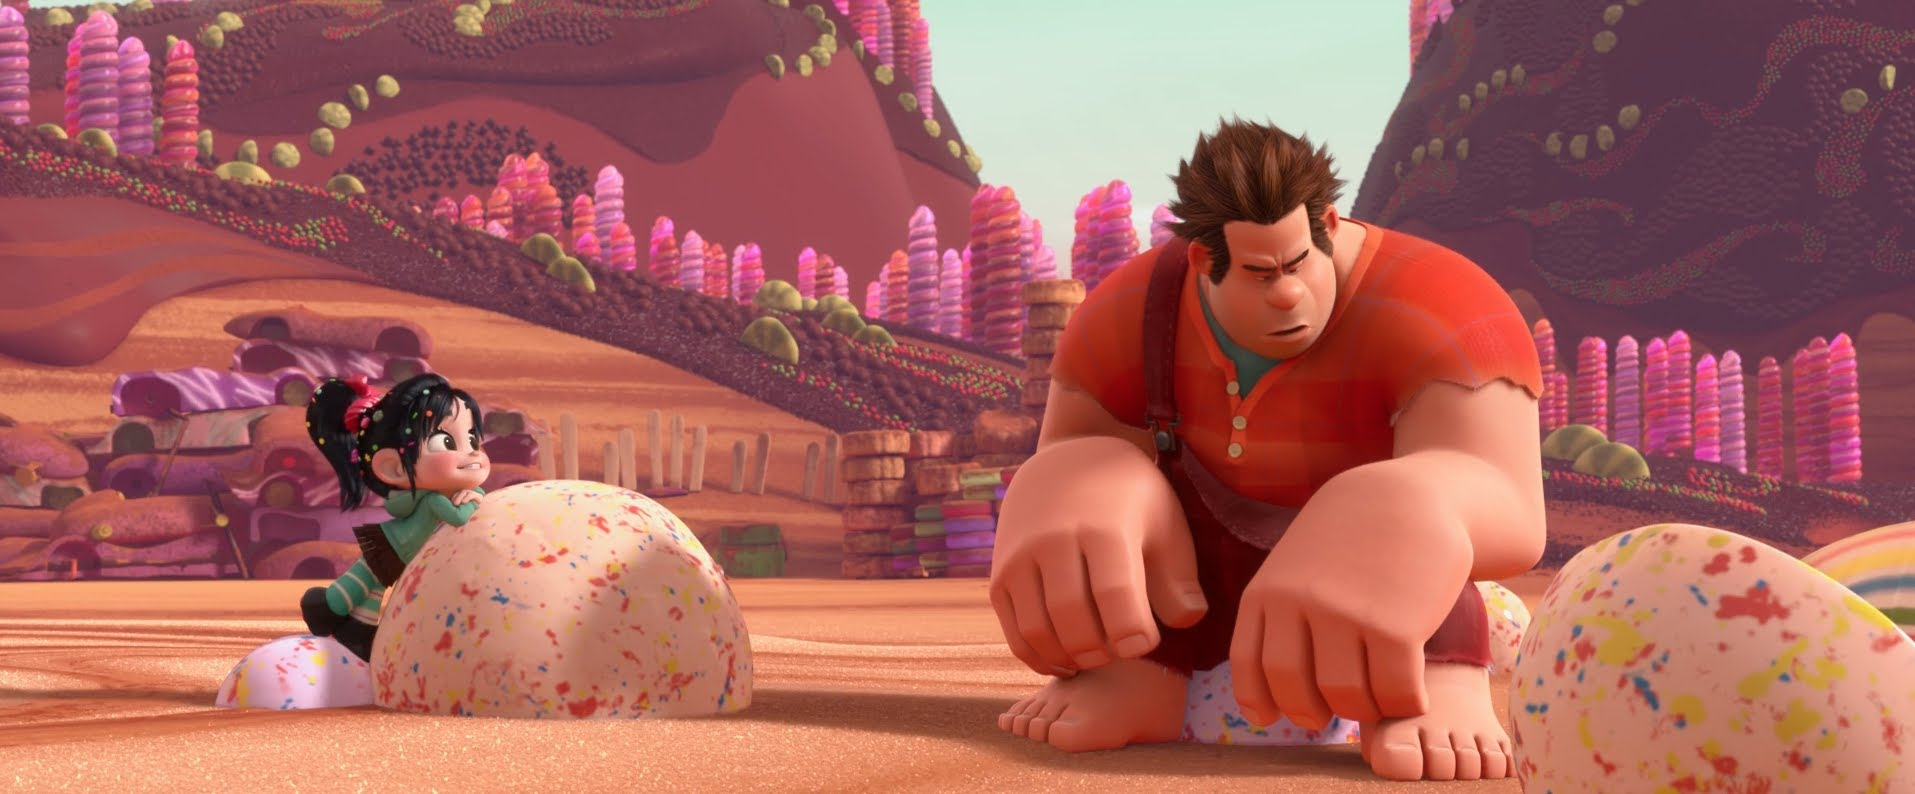 wreck-it ralph disney best